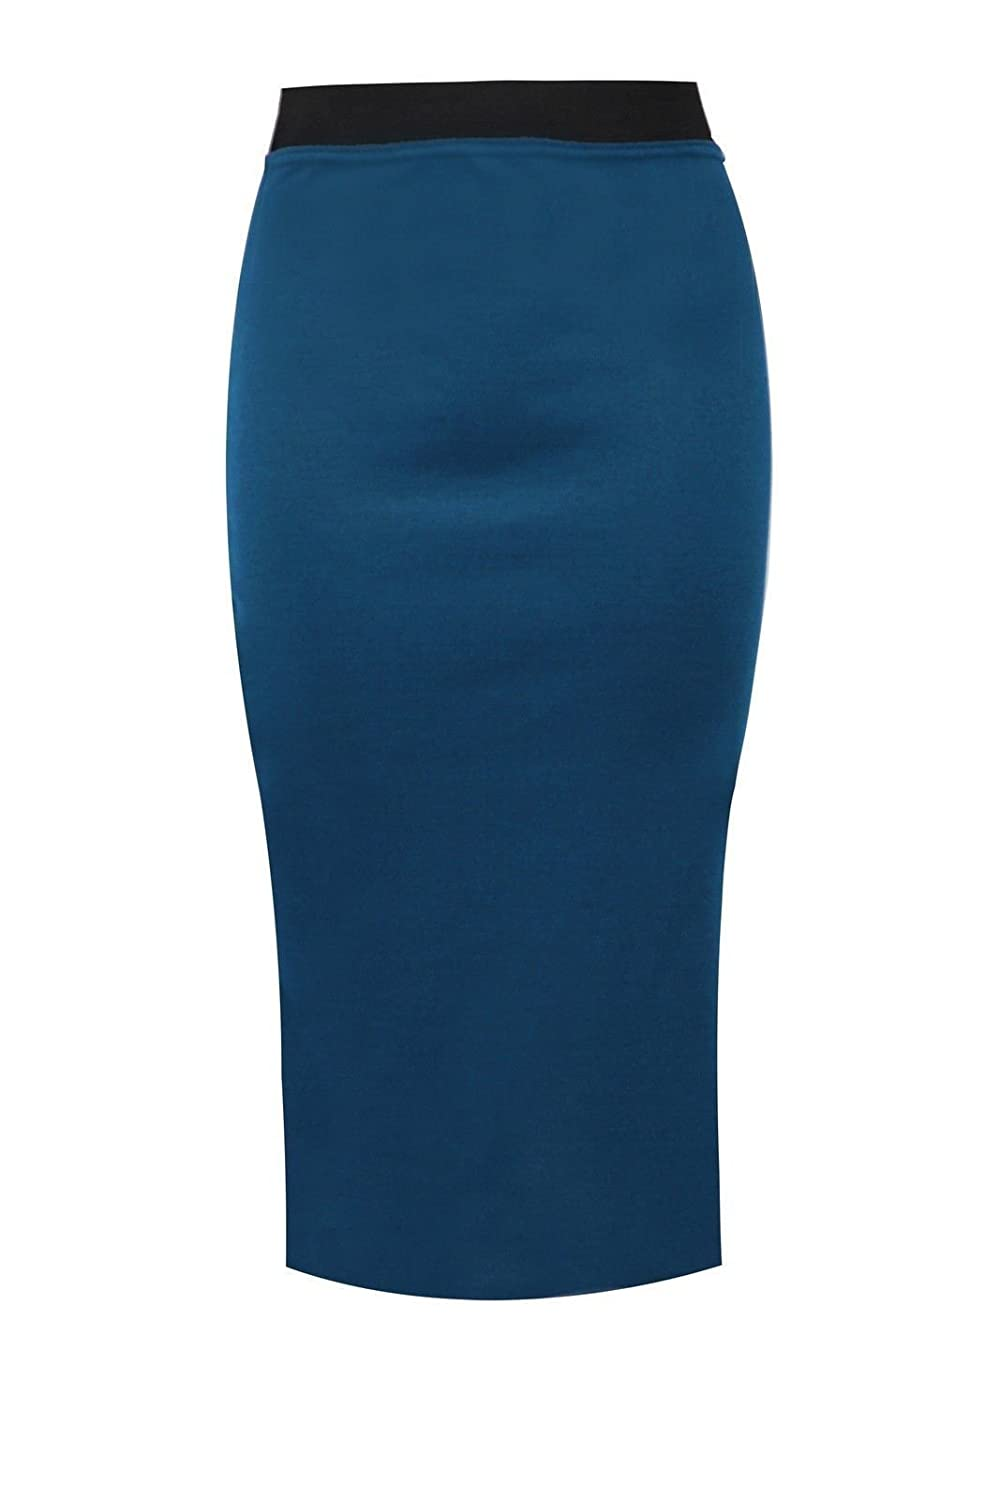 0e892028b31 NEW WOMENS PLAIN MIDI PENCIL SKIRT BODYCON STRETCH JERSEY OFFICE SKIRT SIZE  8-26